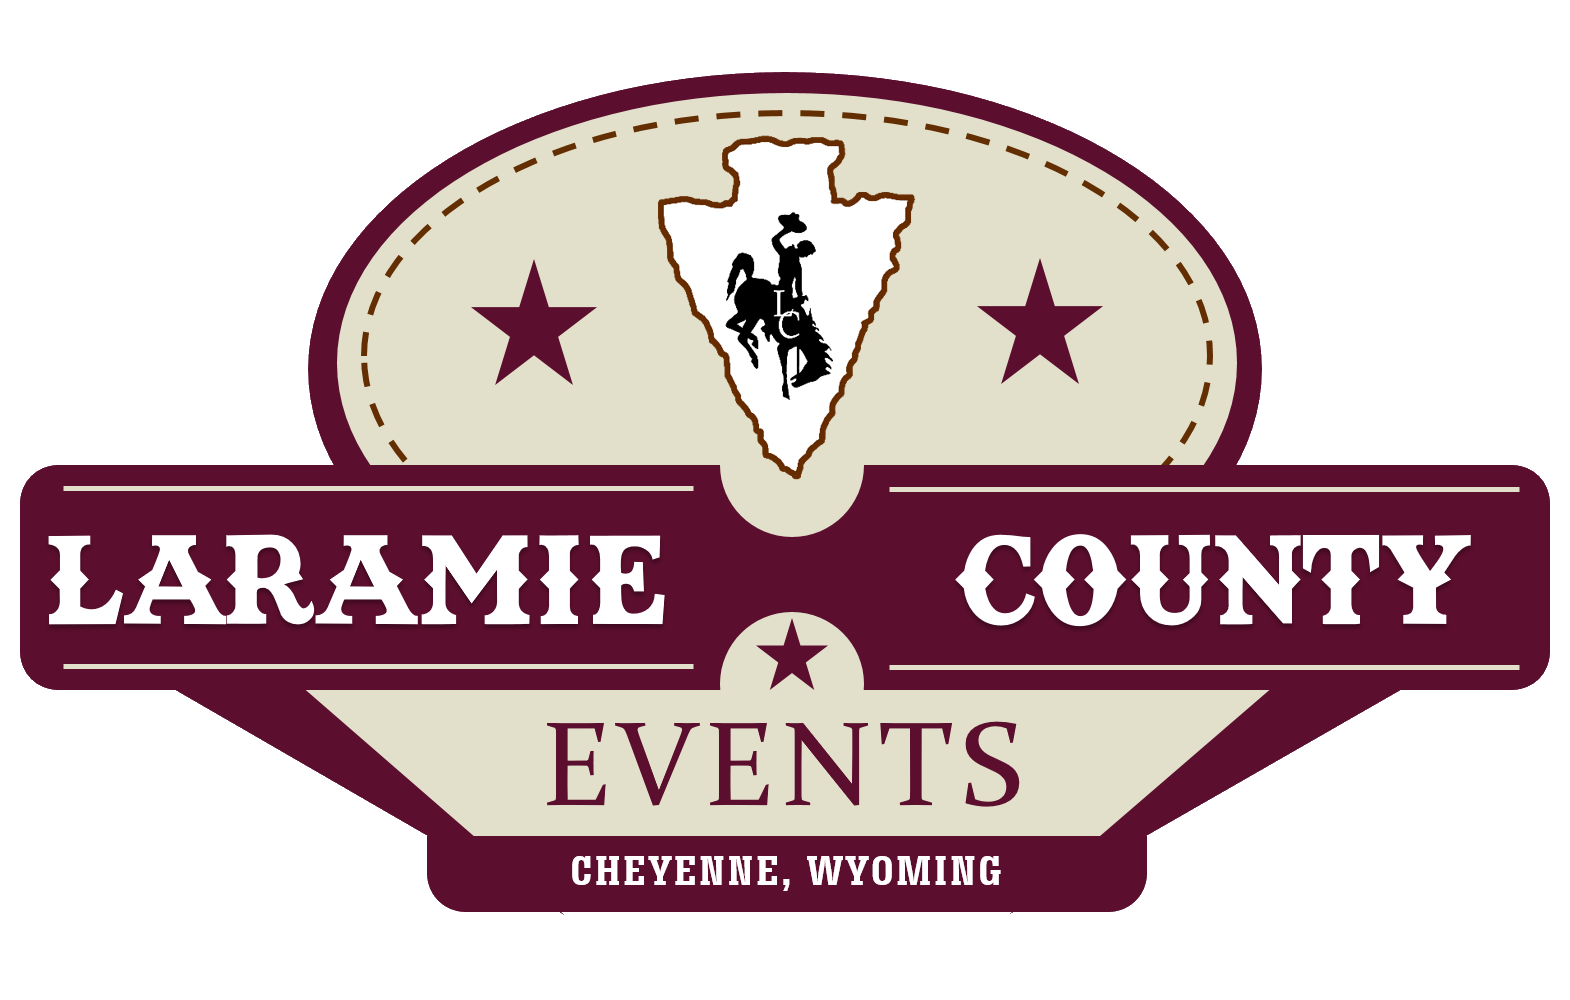 Laramie County Events